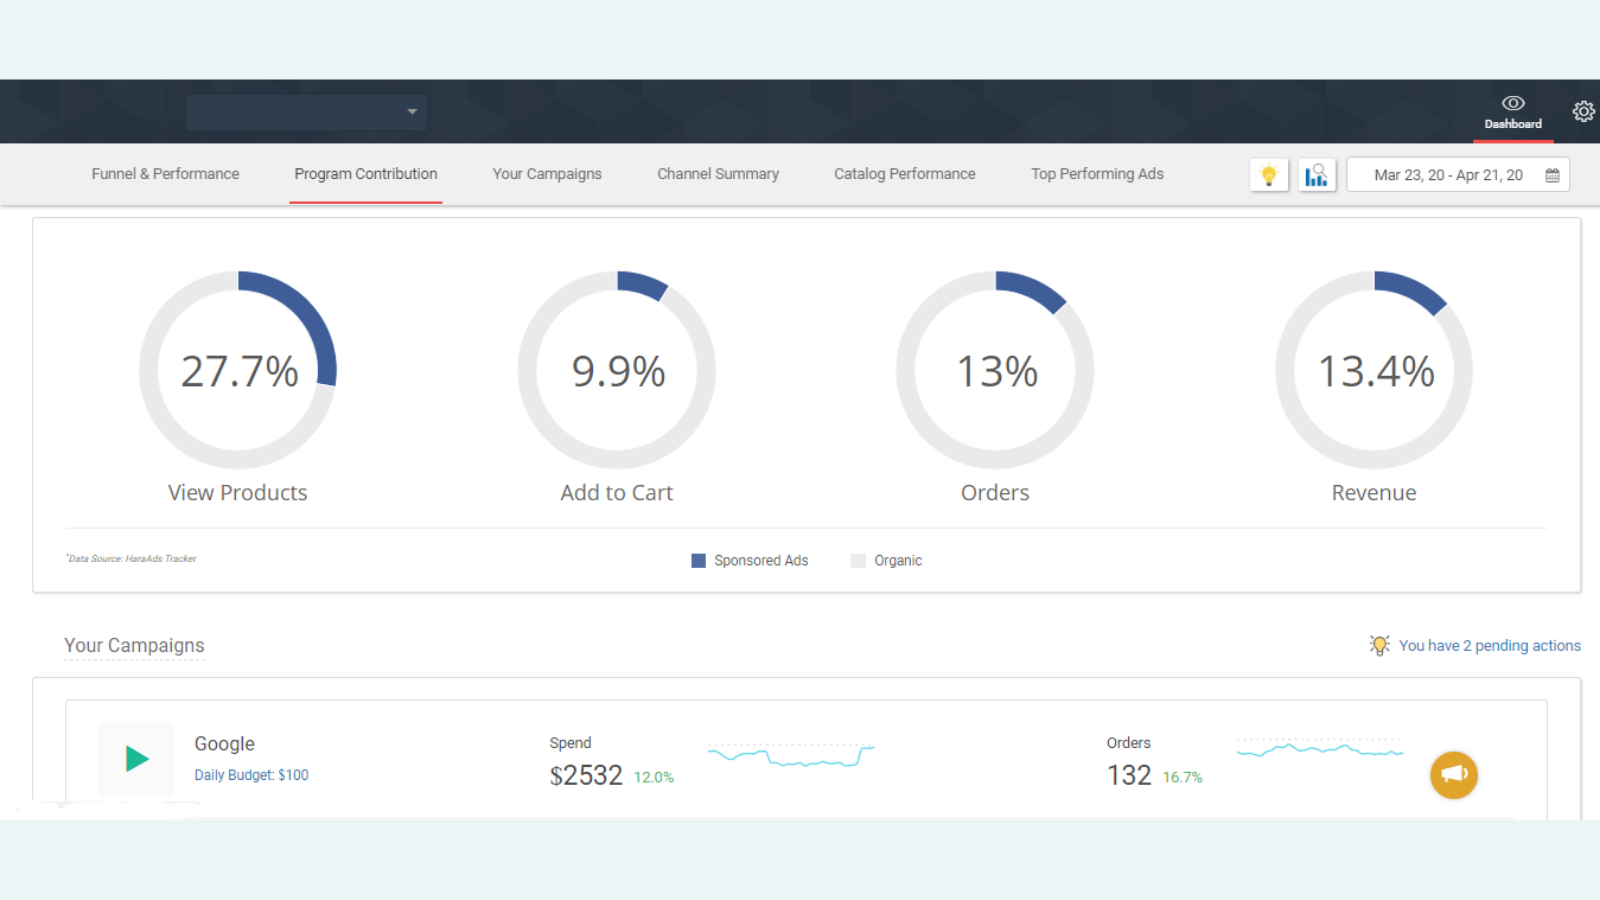 Analyze the contribution of app to overall performance